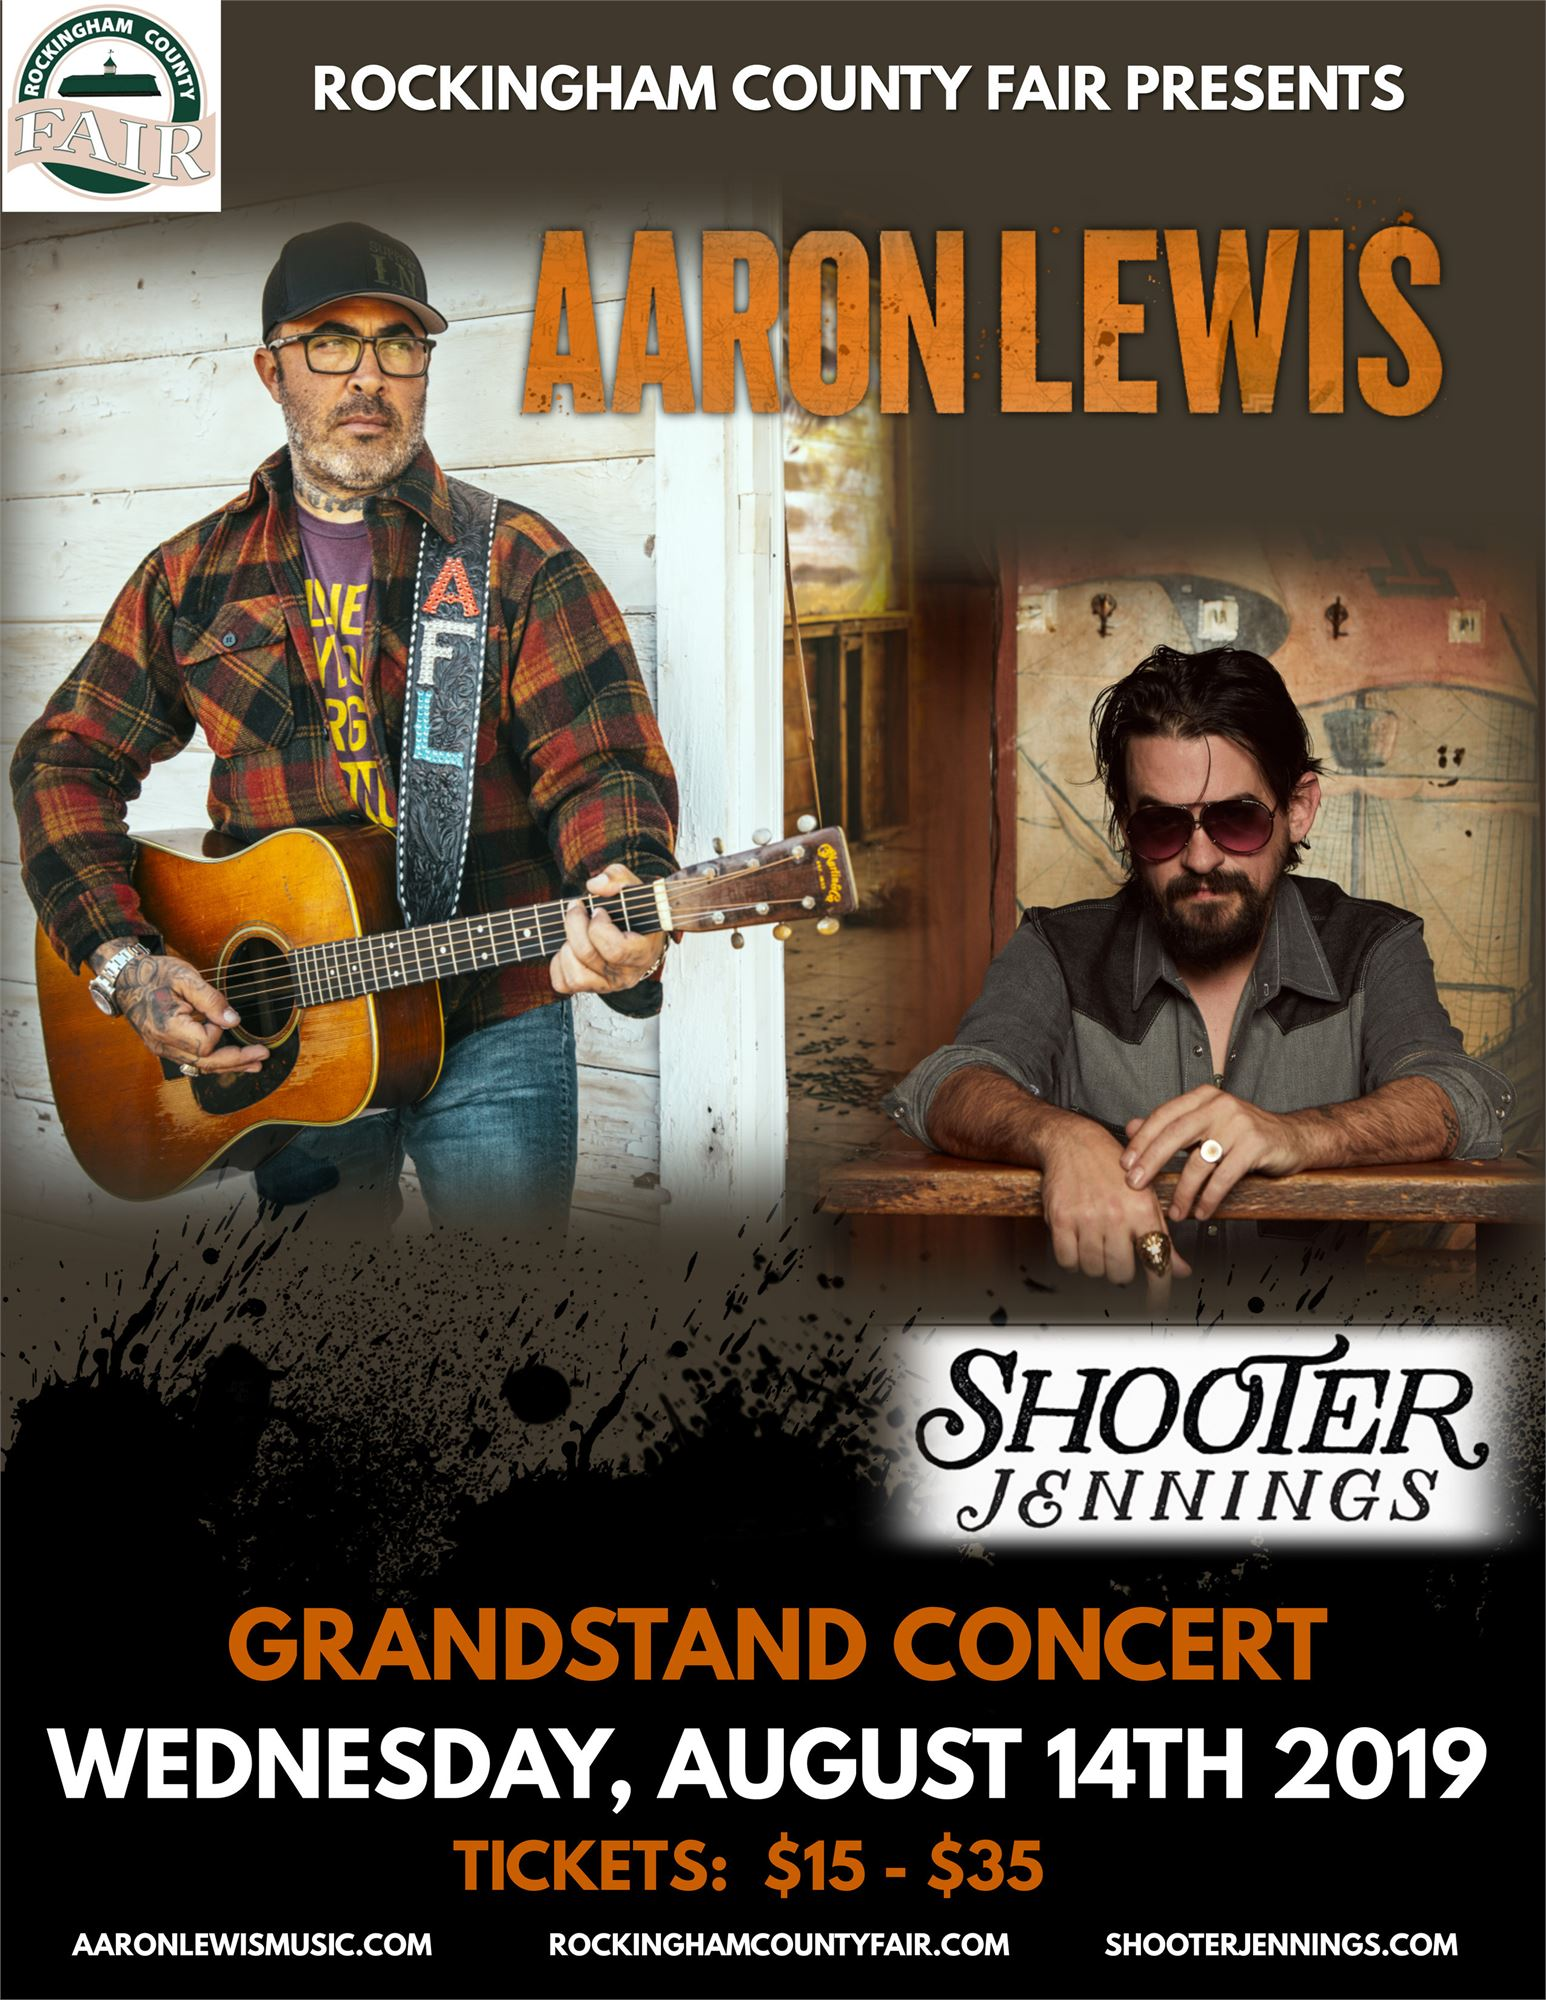 Aaron Lewis with Shooter Jennings